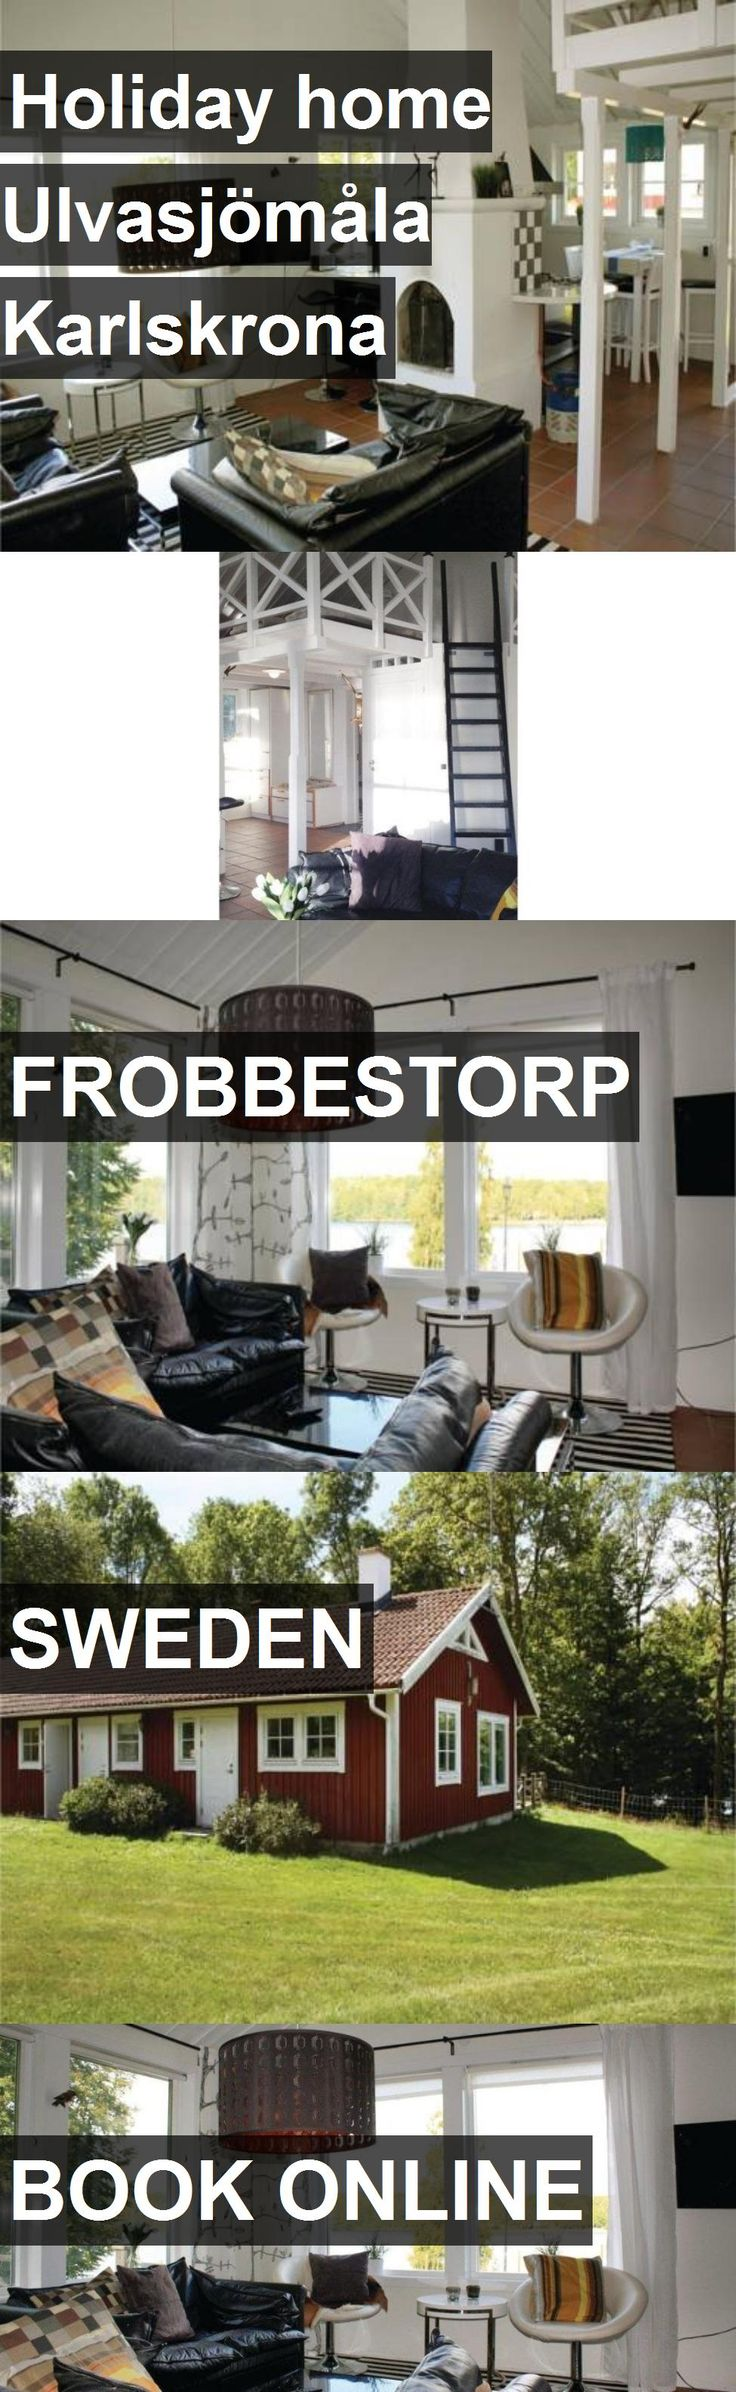 Hotel Holiday home Ulvasjömåla Karlskrona in Frobbestorp, Sweden. For more information, photos, reviews and best prices please follow the link. #Sweden #Frobbestorp #travel #vacation #hotel